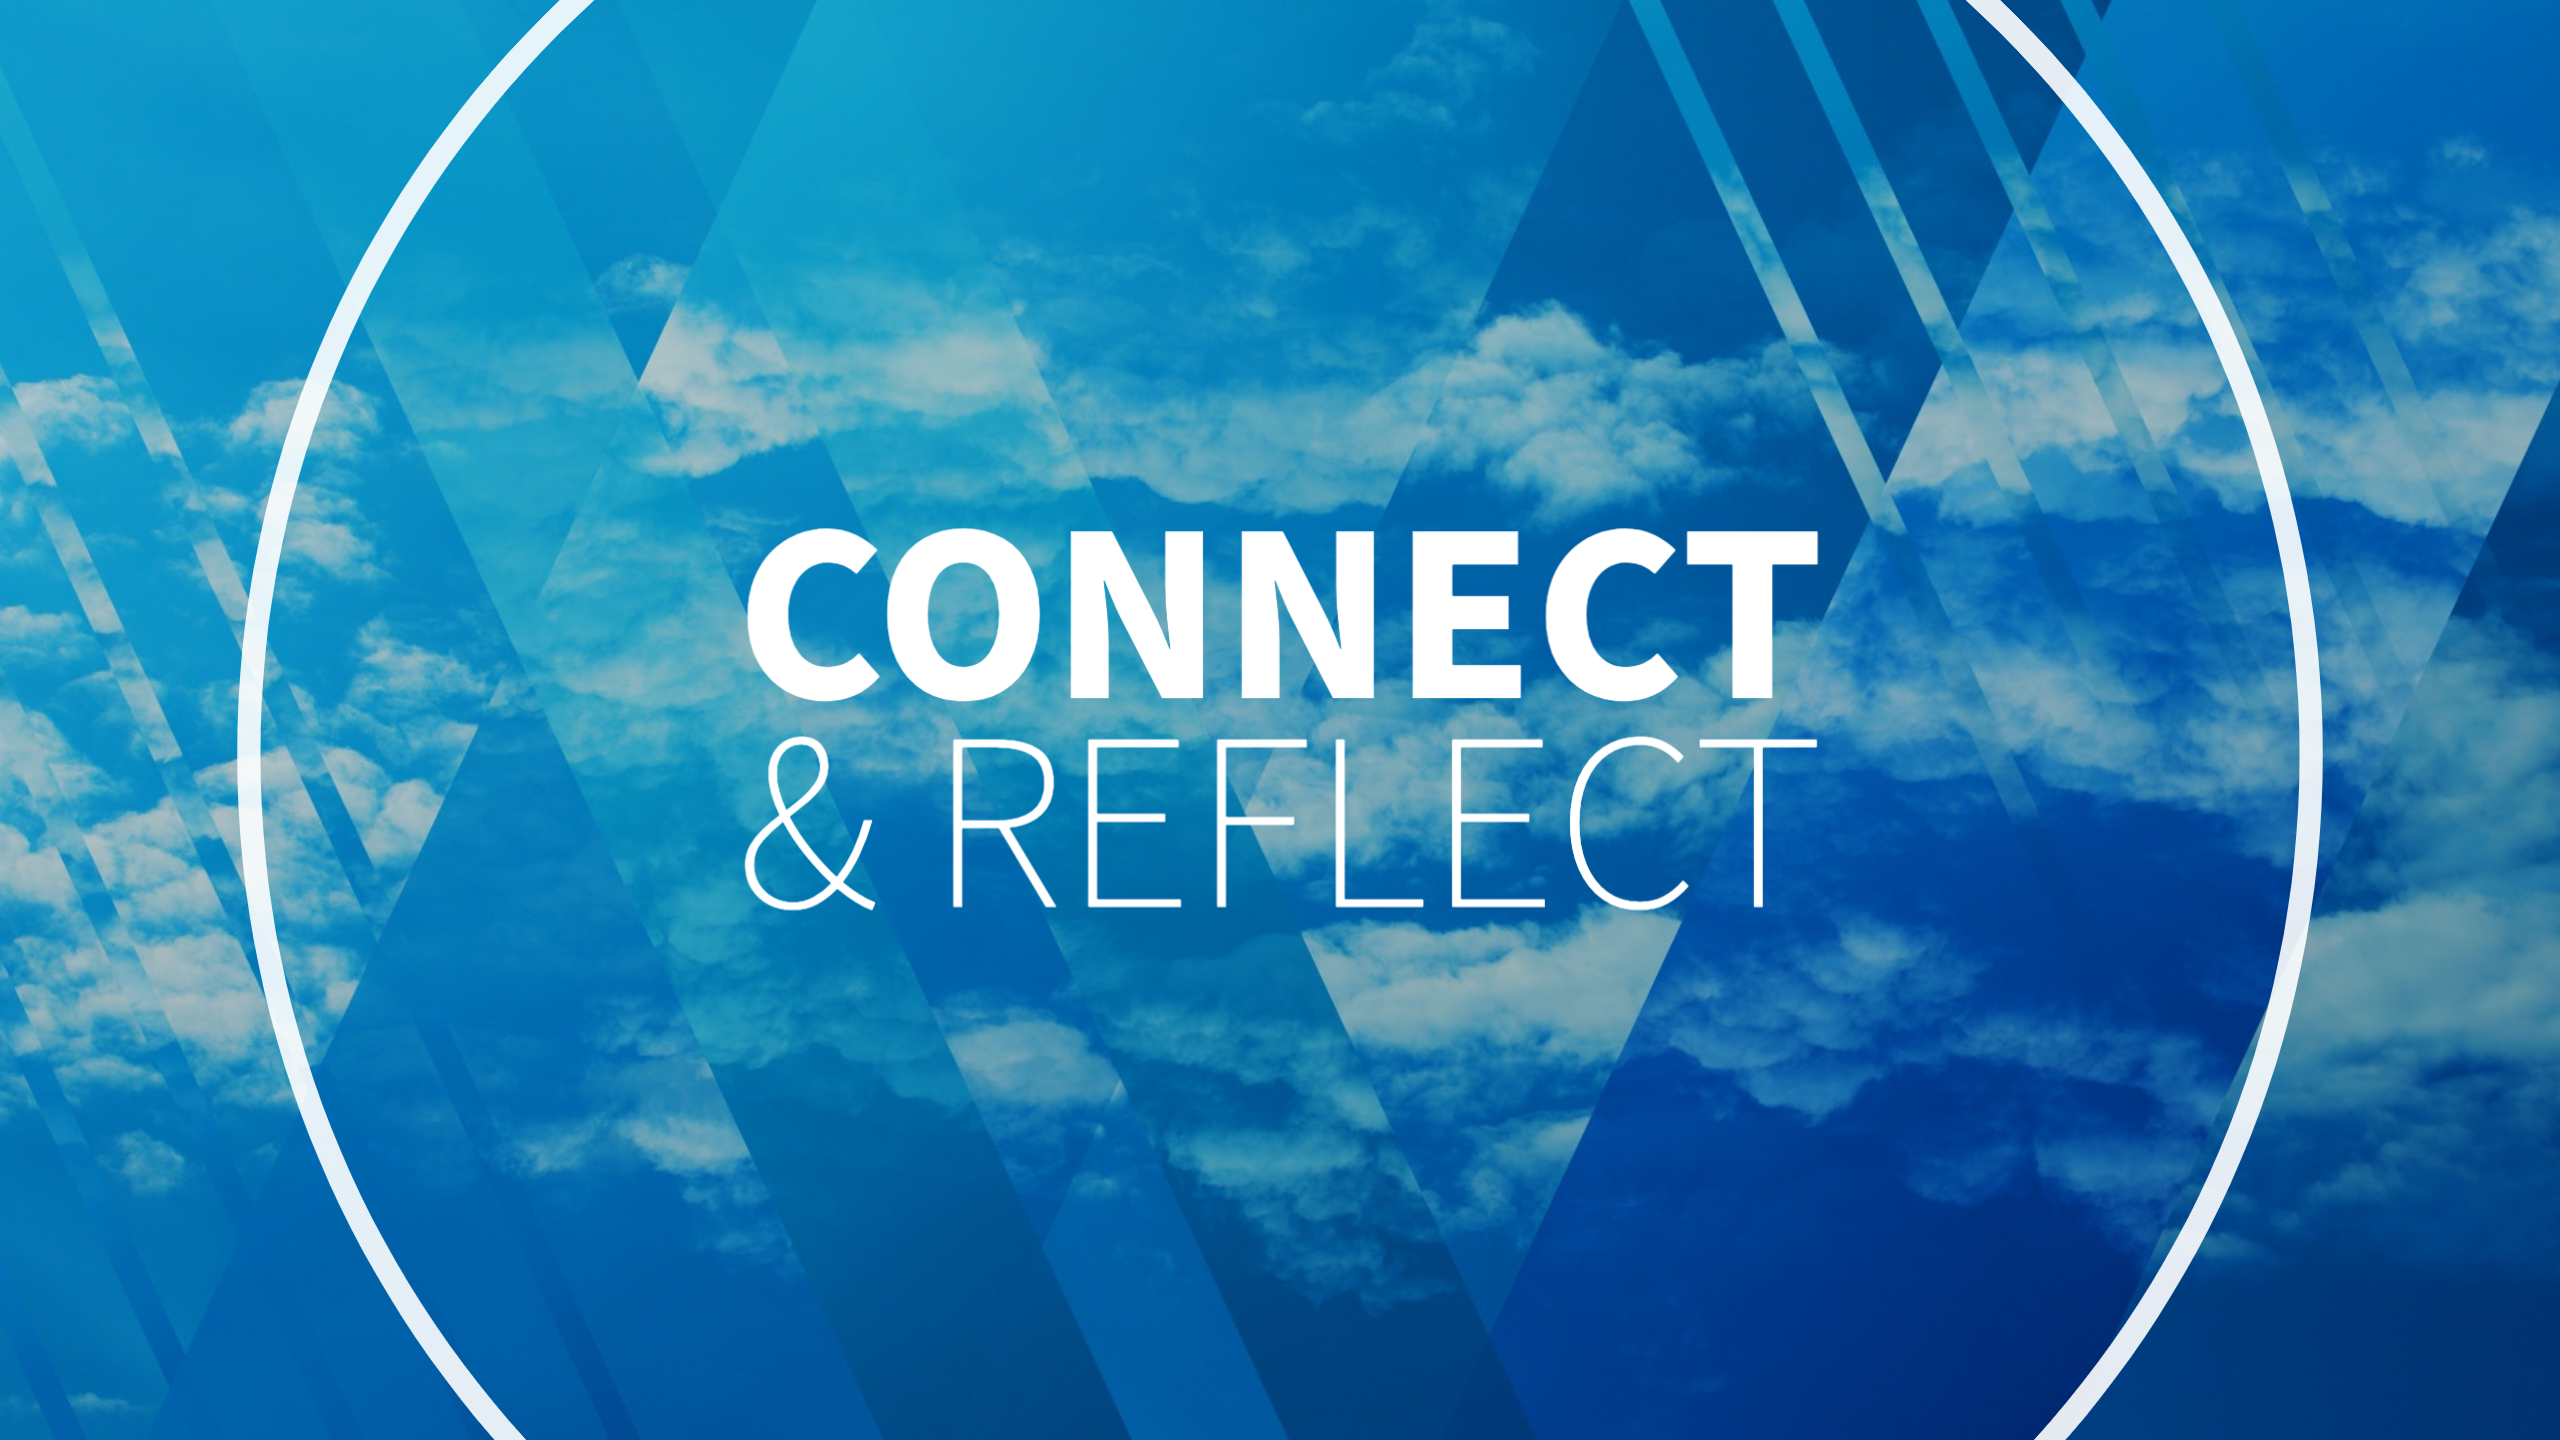 Connect & Reflect